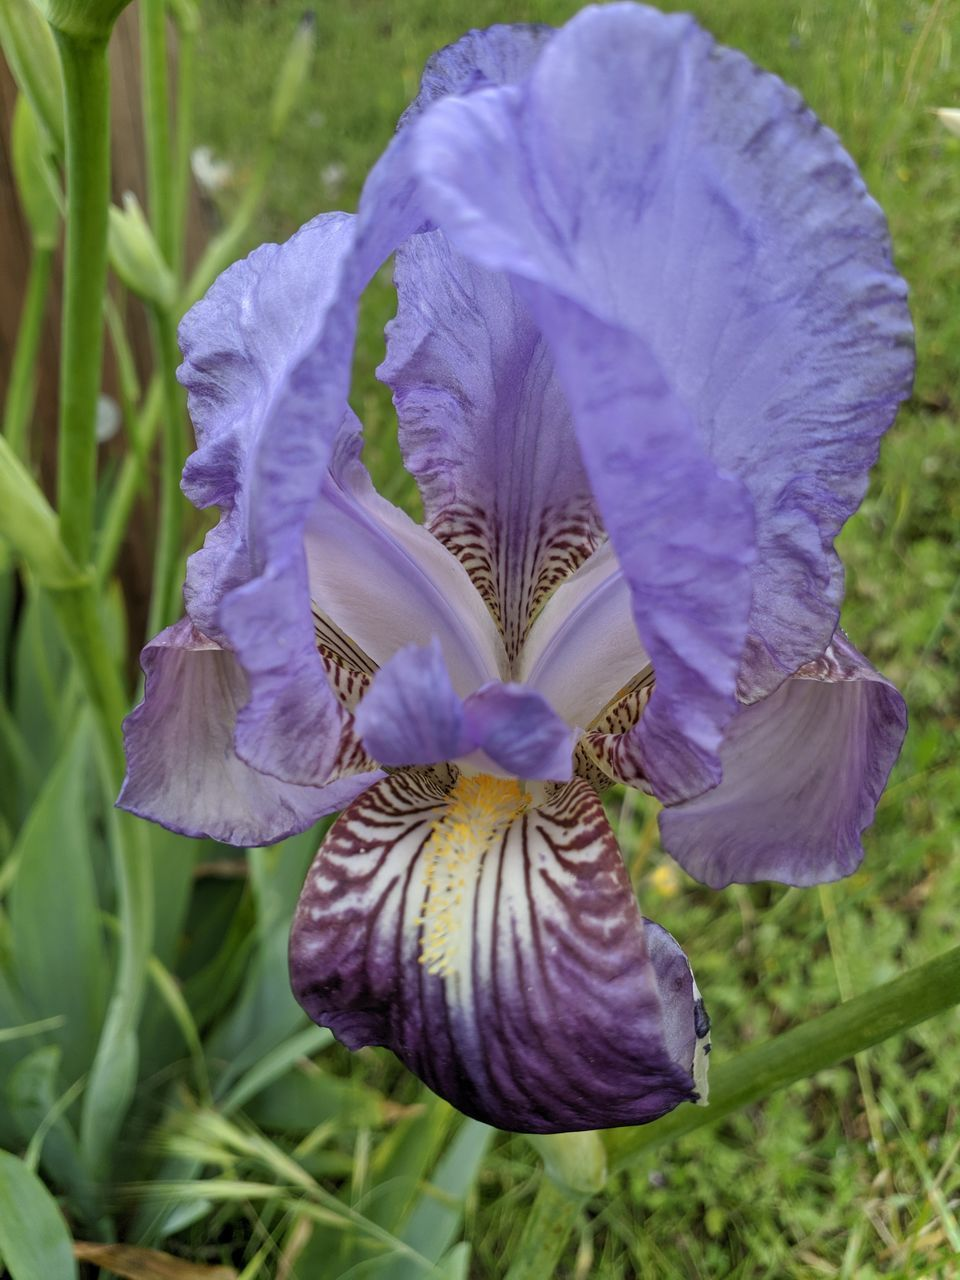 CLOSE-UP OF PURPLE IRIS BLOOMING ON FIELD